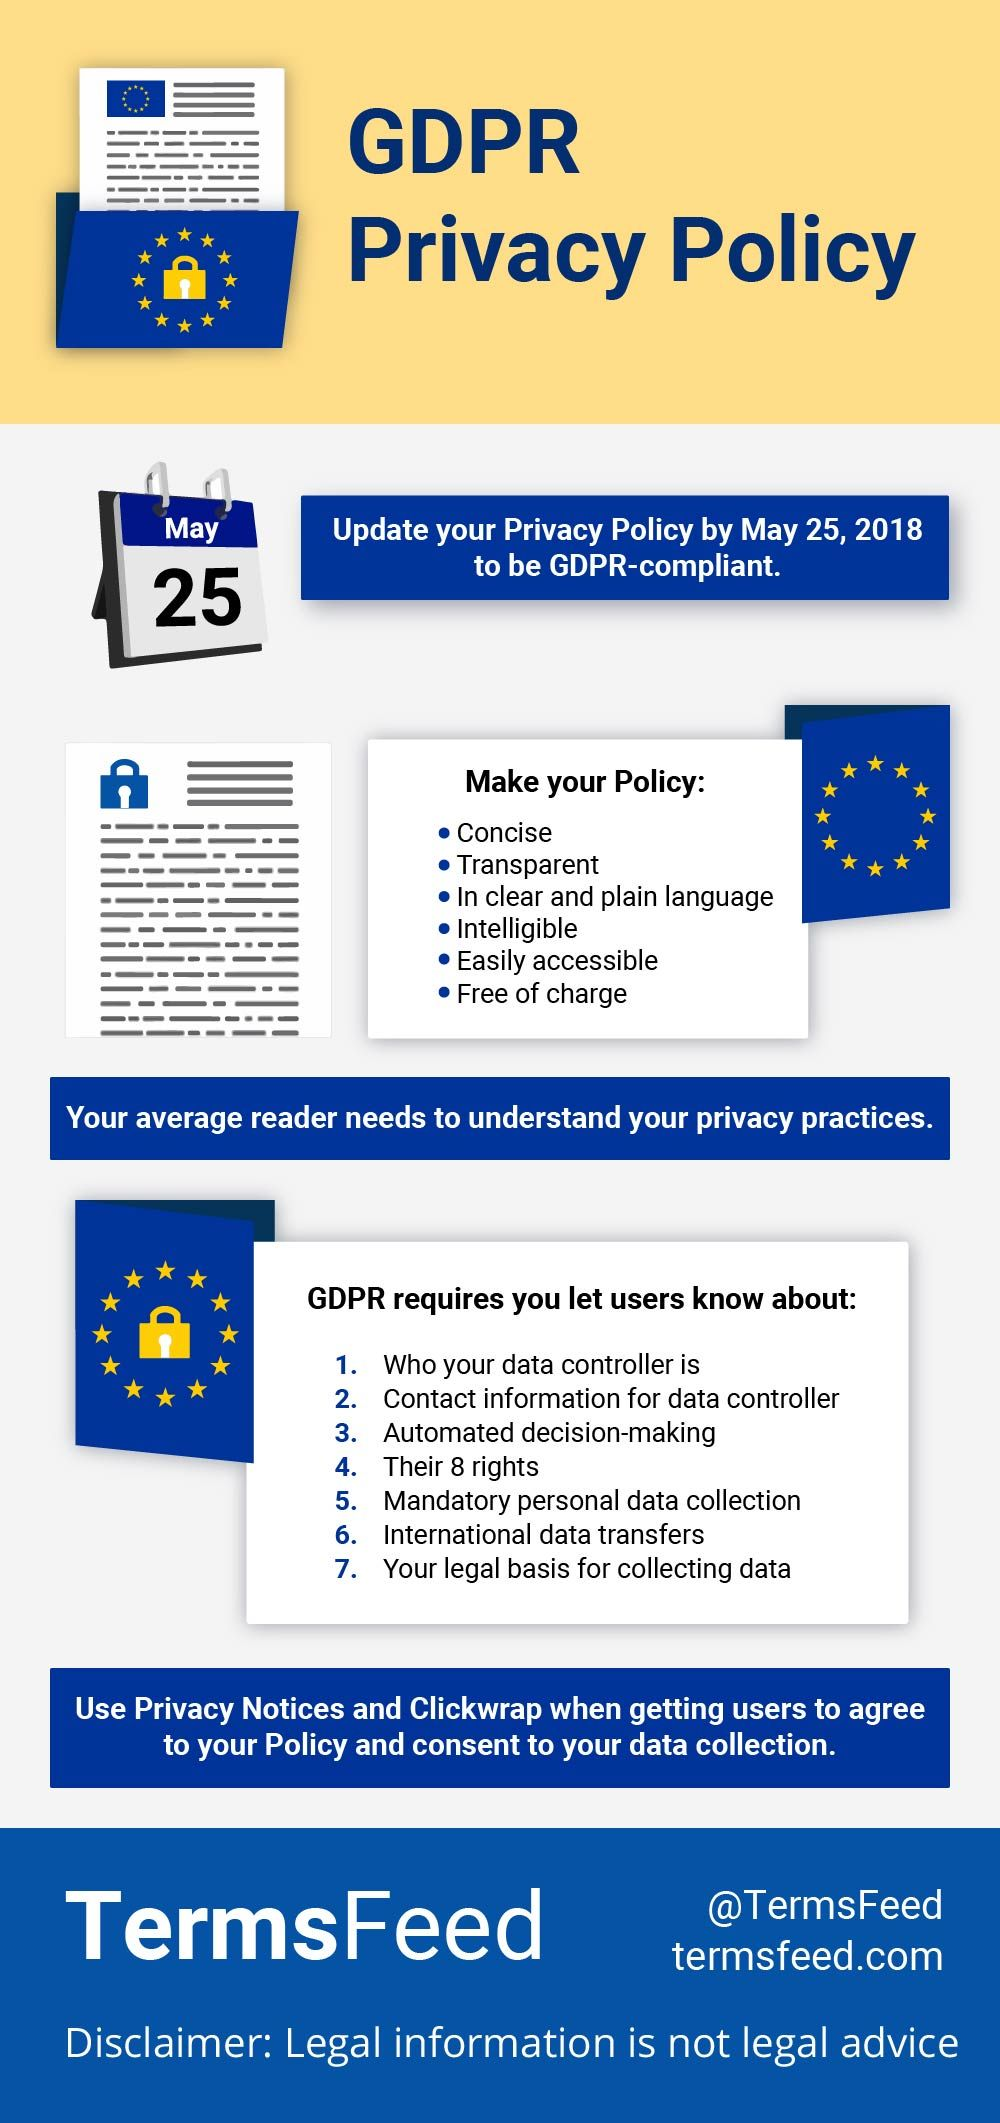 Data Privacy Policy >> Gdpr Privacy Policy Privacy Policy General Data